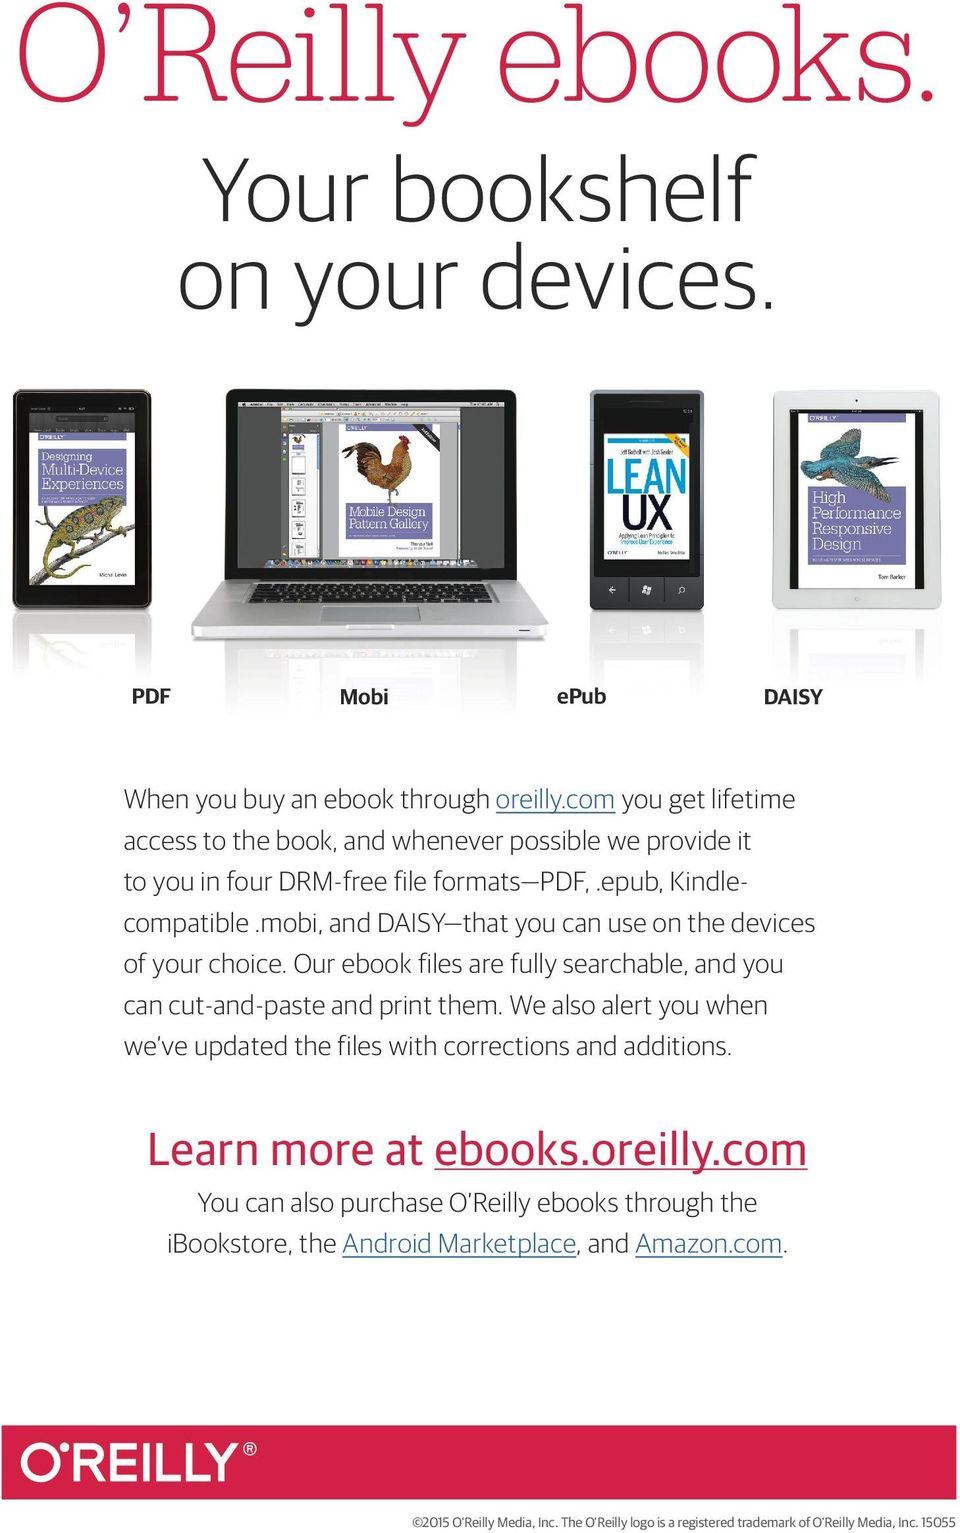 mobi, and DAISY that you can use on the devices of your choice. Our ebook files are fully searchable, and you can cut-and-paste and print them.